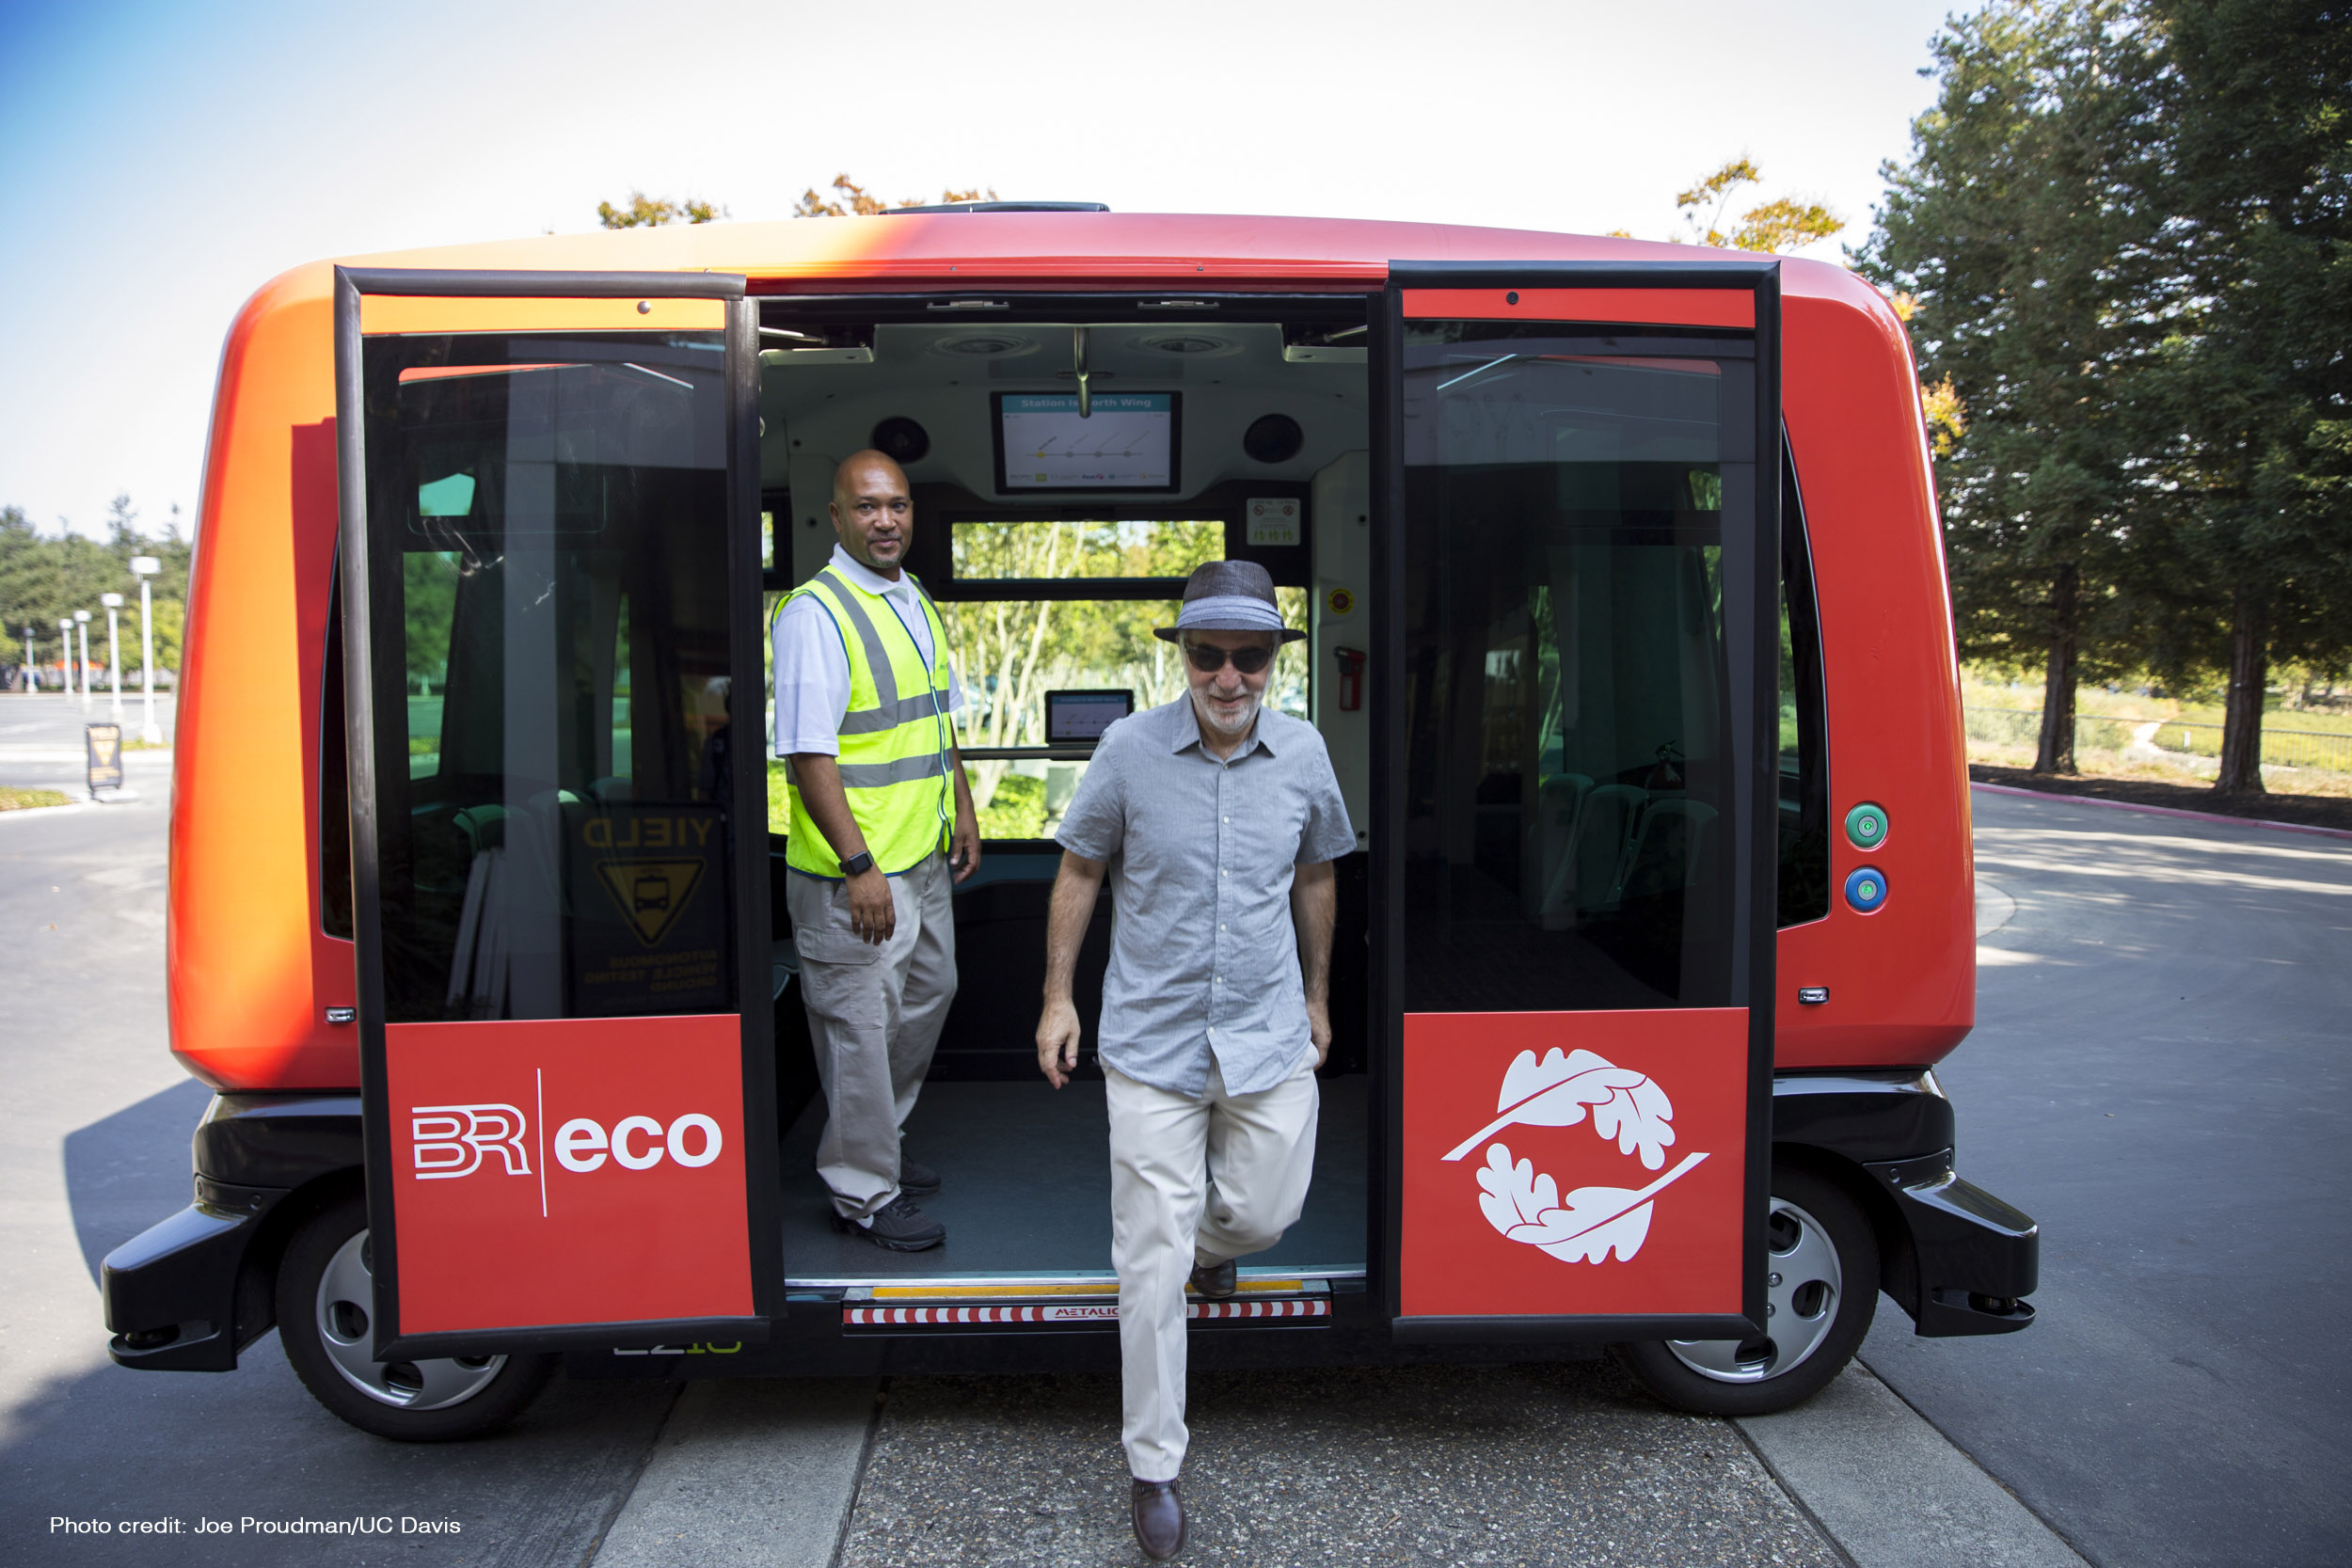 Sperling exiting an automated electric shuttle bus at Bishop Ranch business park in San Ramon, California. The shuttle is part of a pilot program intended to eventually ferry employees along designated routes in the business park. (image credit: Joe Proudman/UC DAVIS)